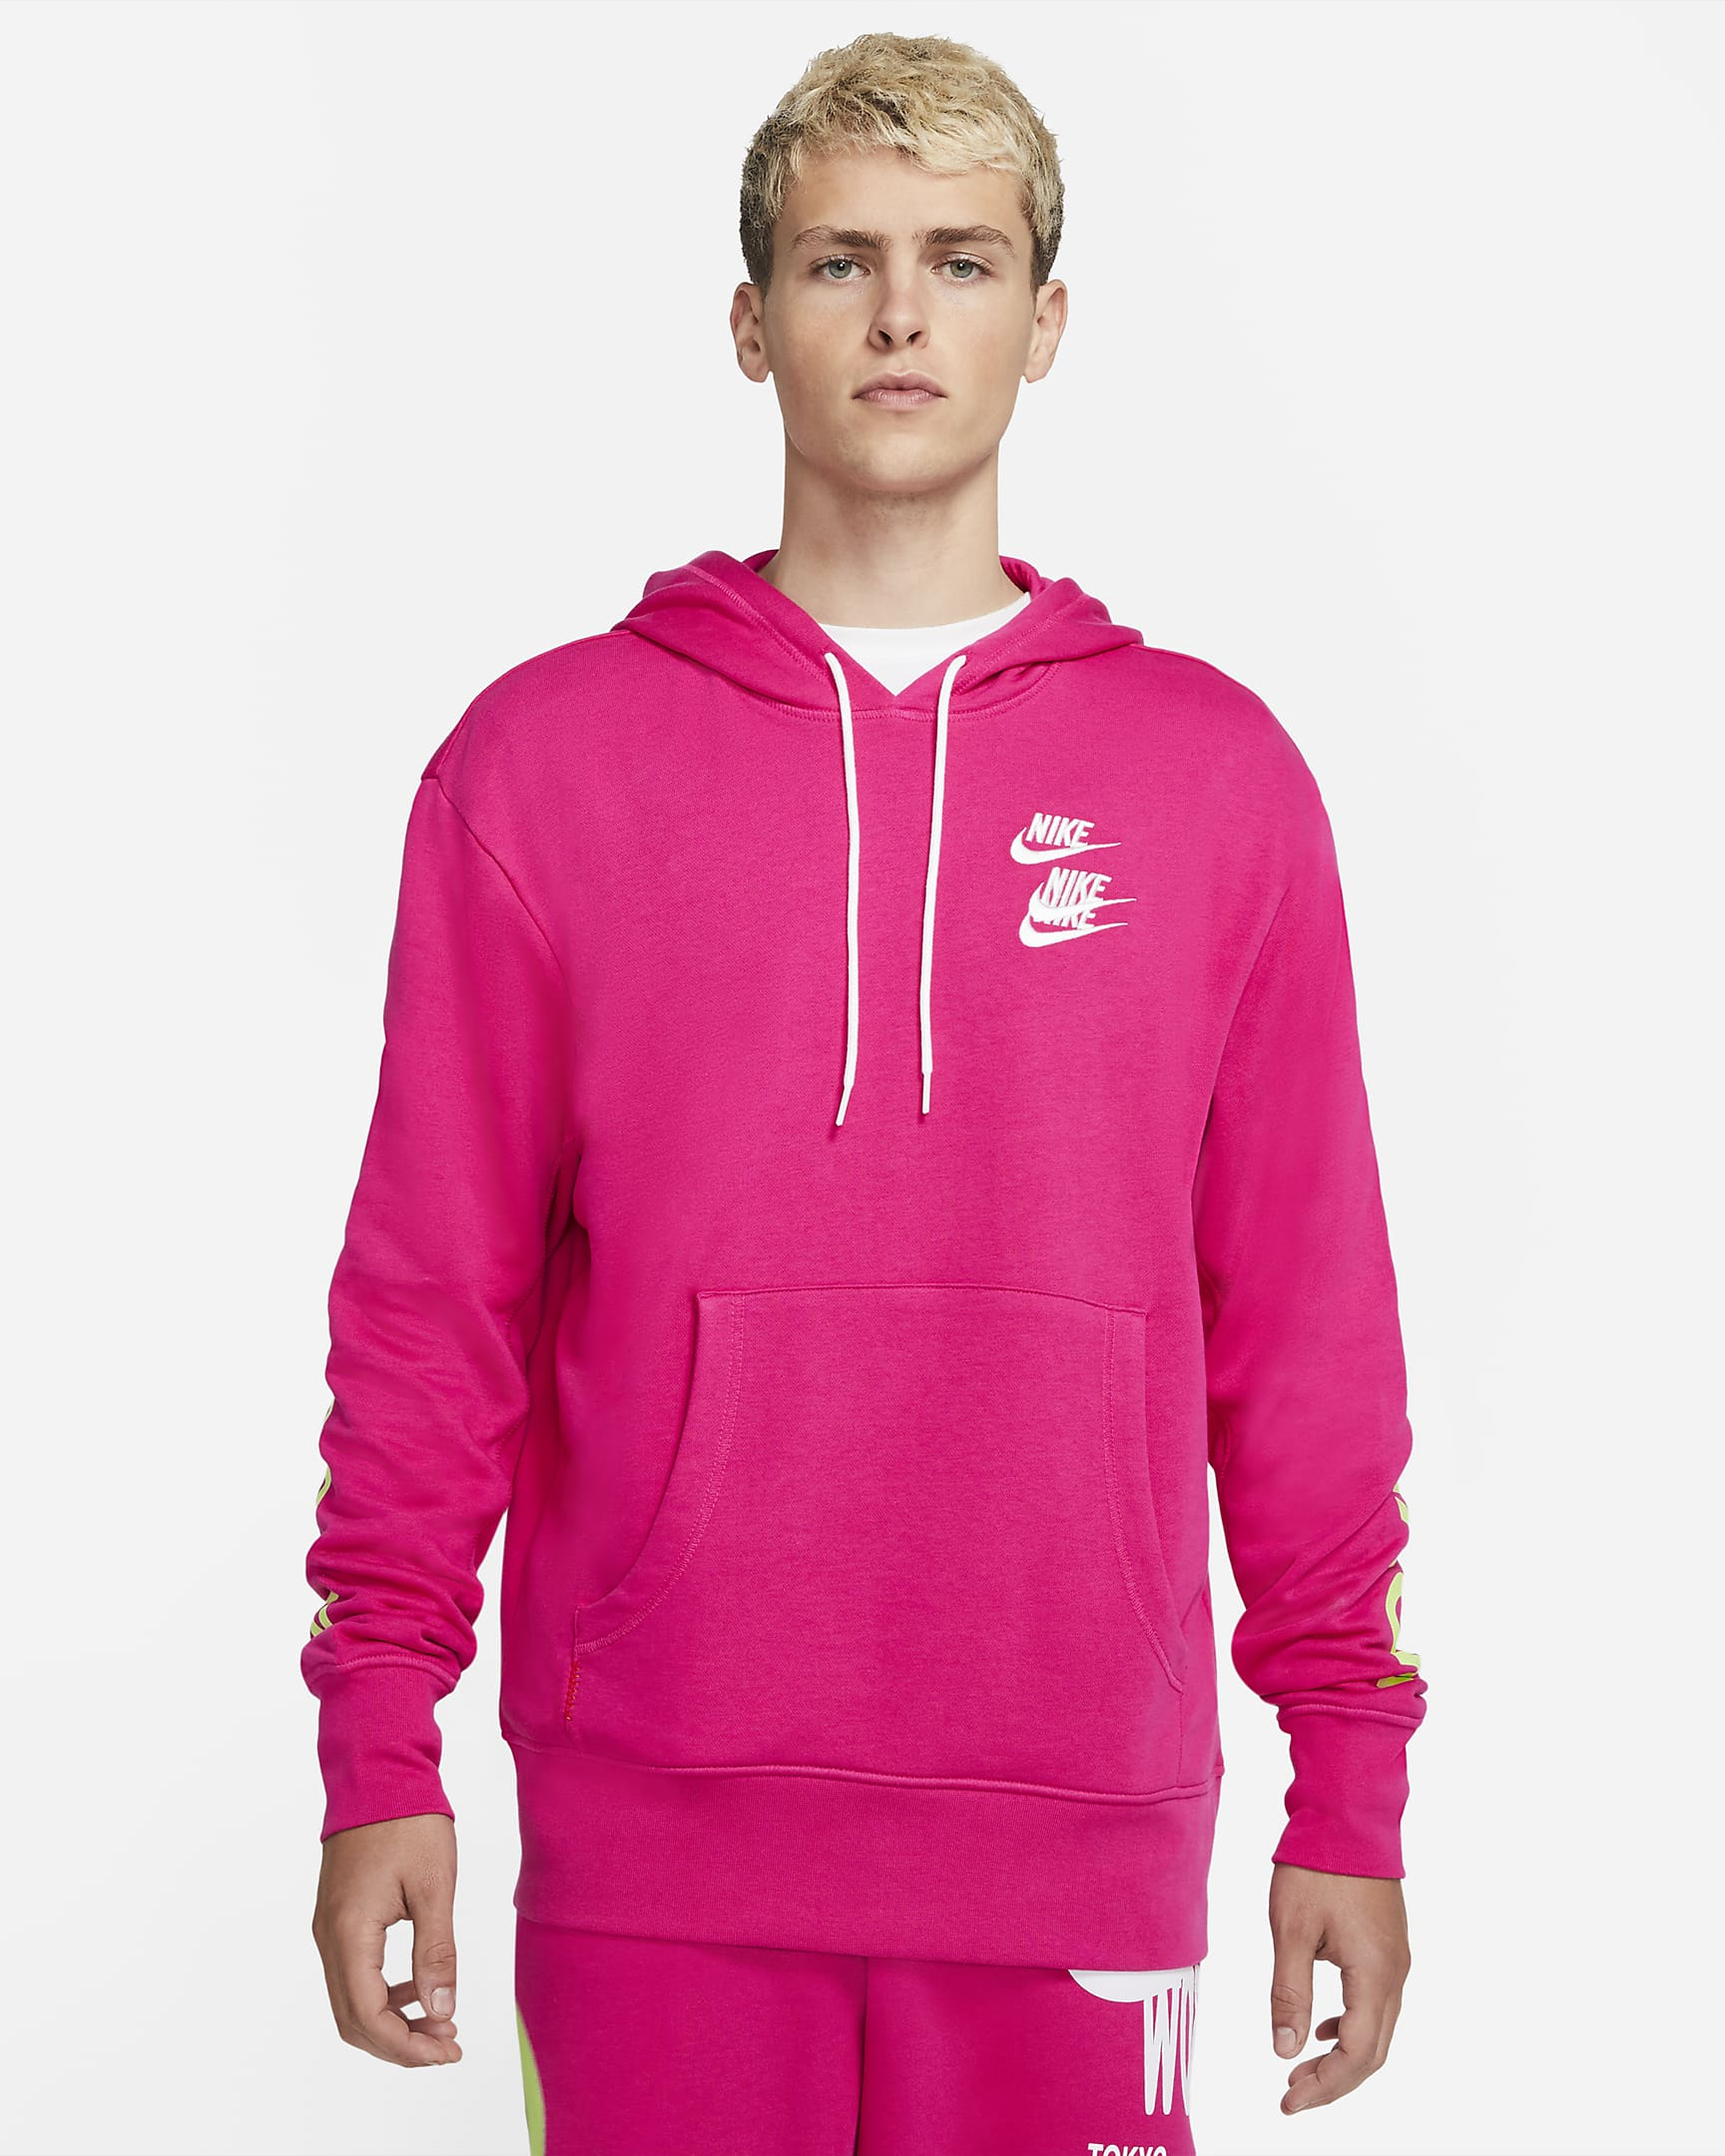 sportswear-pullover-french-terry-mens-hoodie-Sznwfc-4